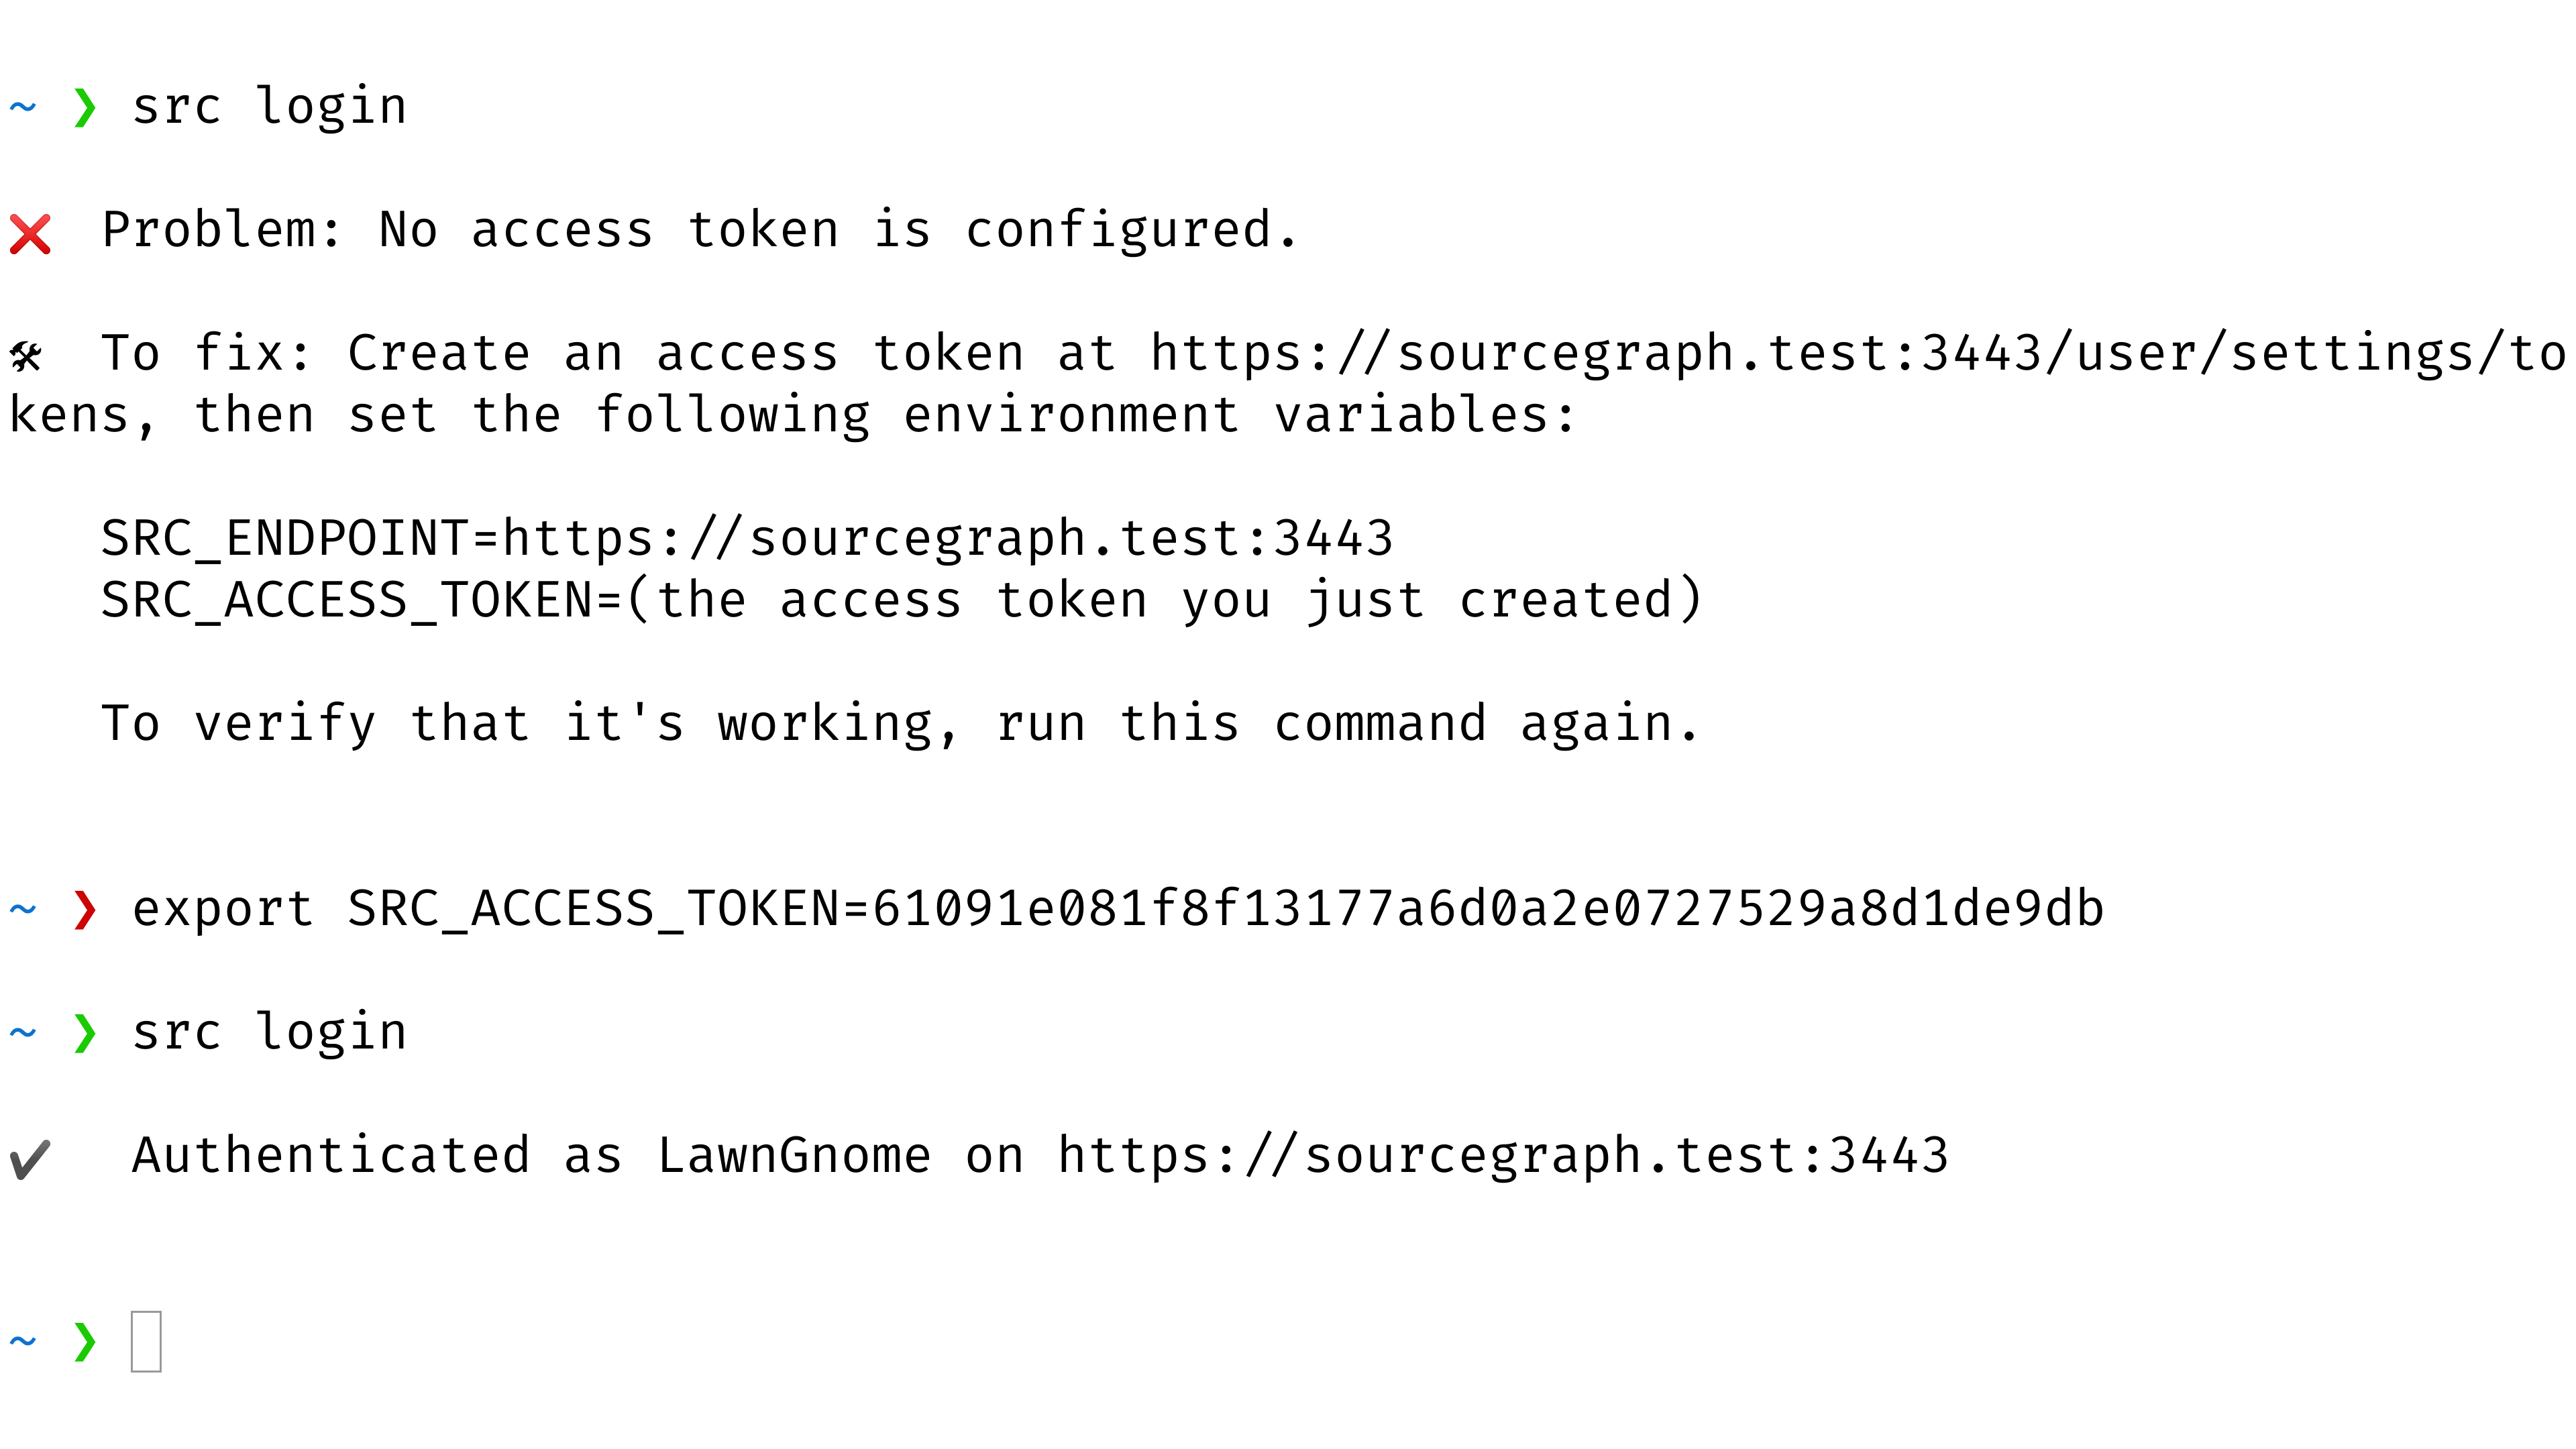 Output from src login showing success